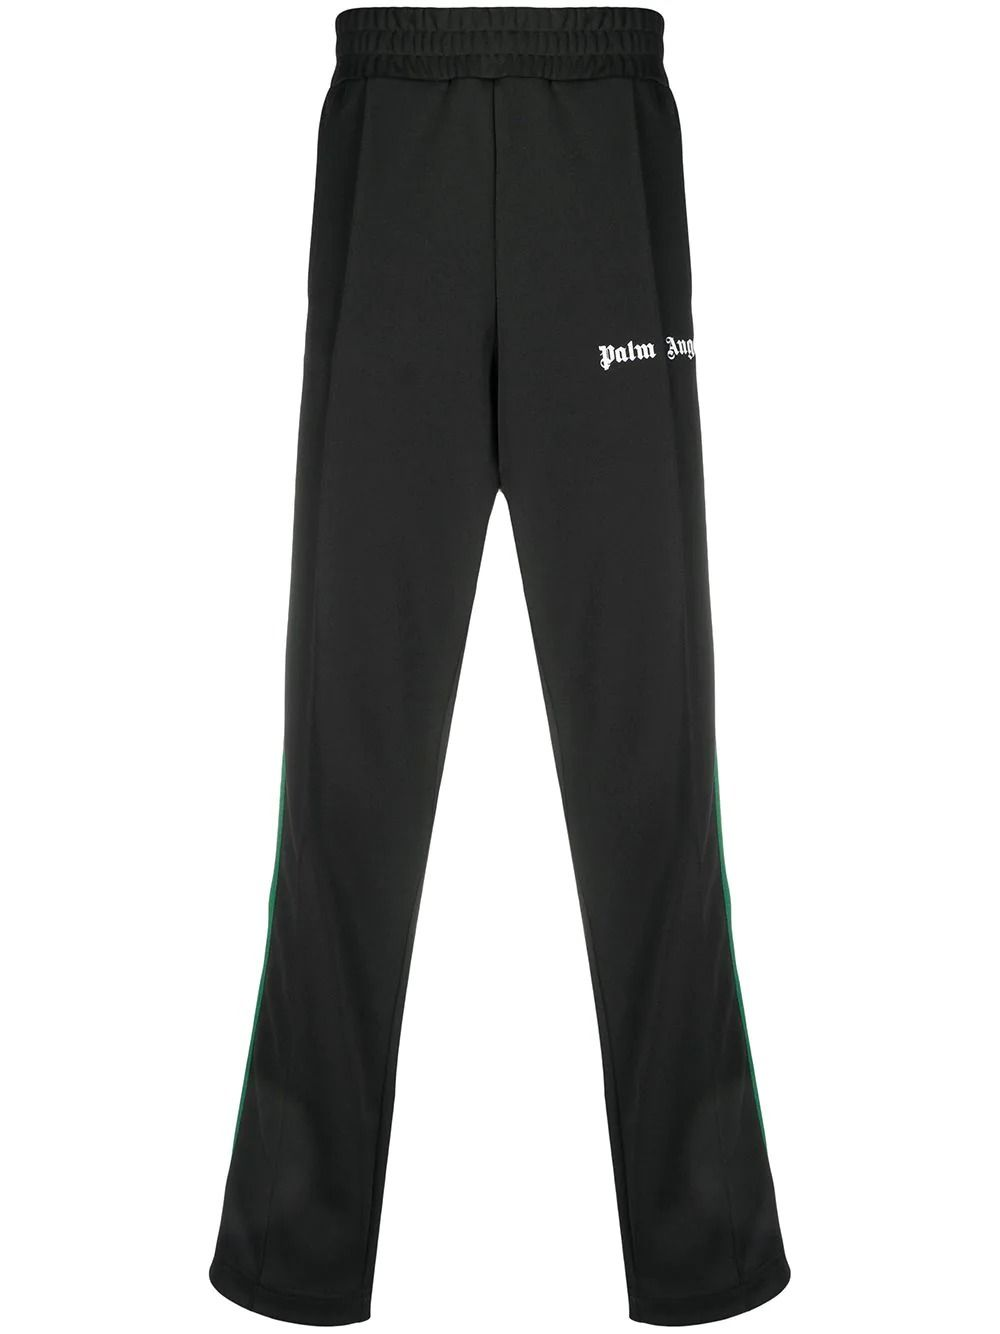 Palm Angels PALM ANGELS MEN'S BLACK POLYESTER JOGGERS